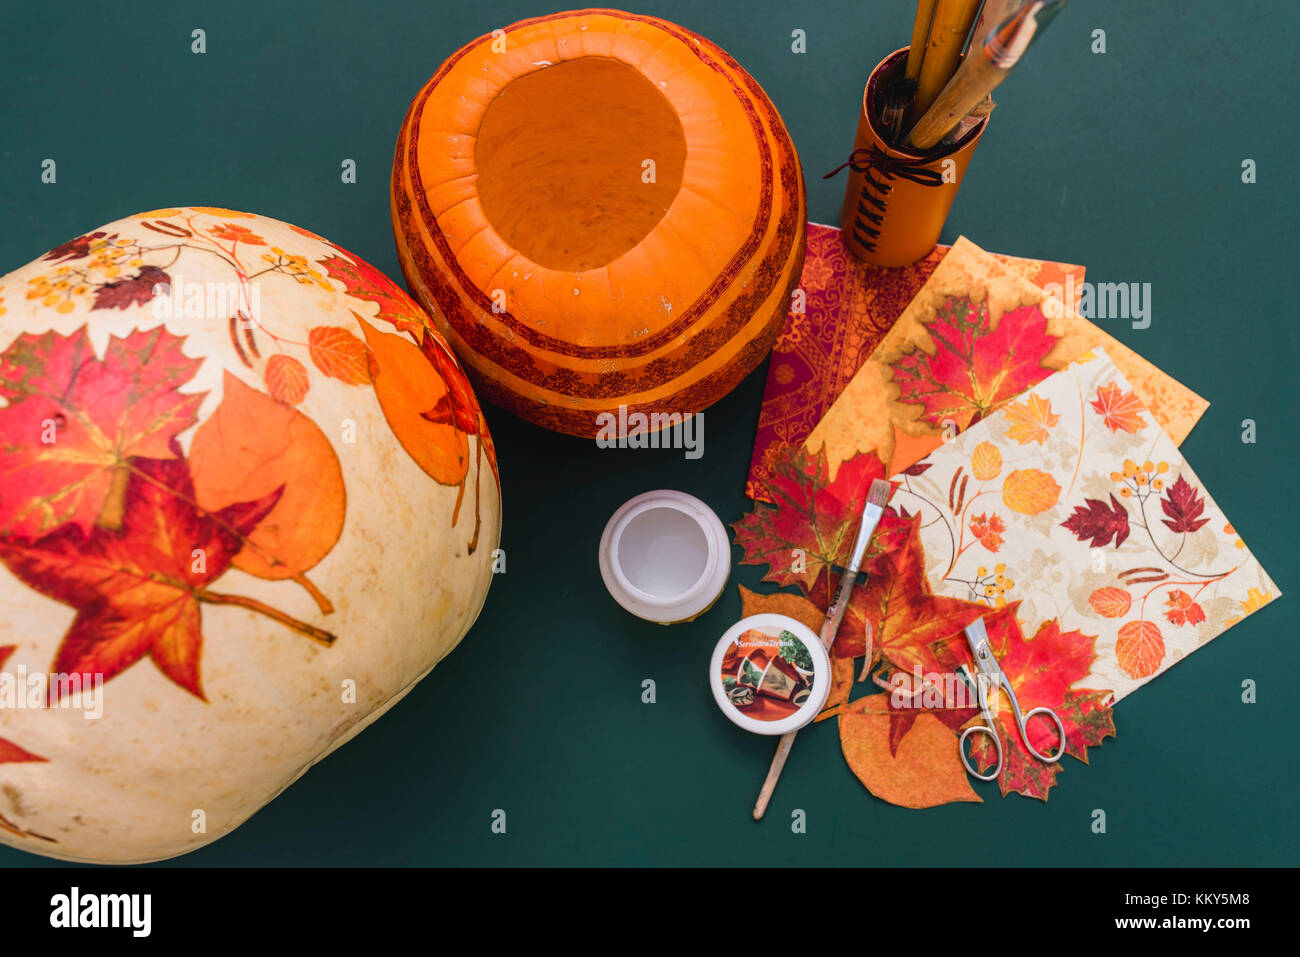 Still Life Diy Autumnal Decoration Pumpkin Napkin Decoupage Stock Photo Alamy